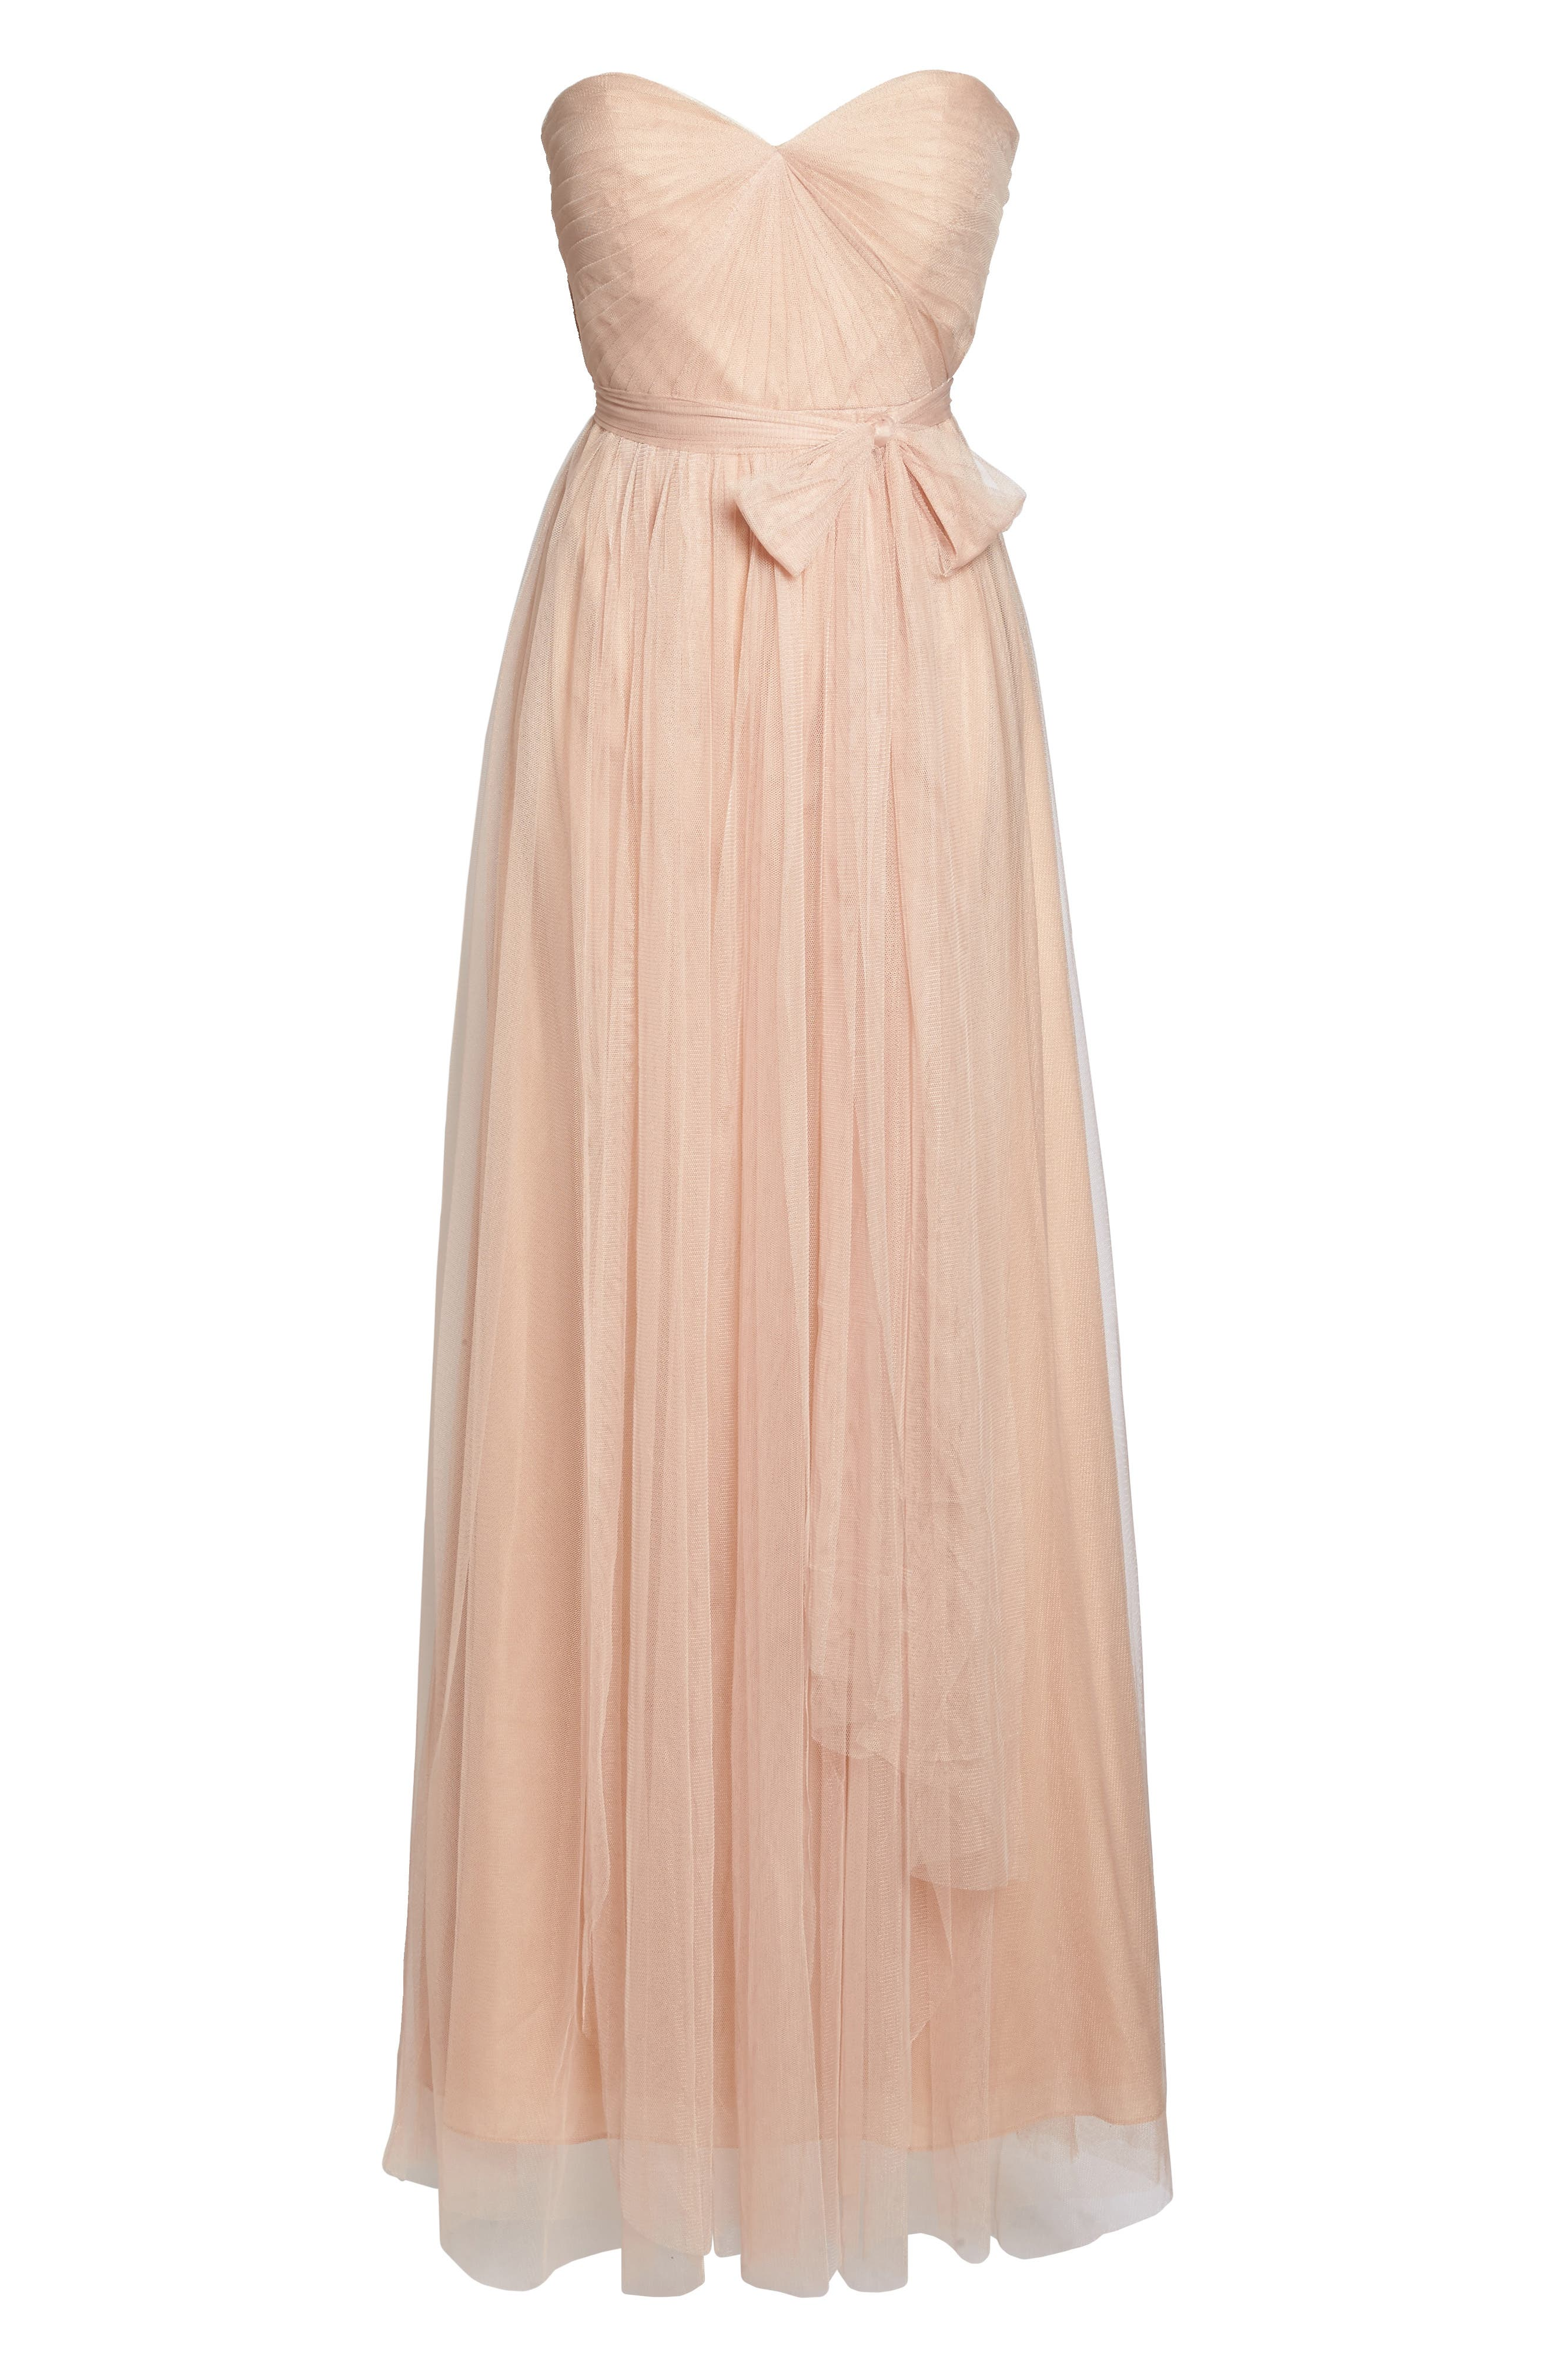 Annabelle Convertible Tulle Column Dress,                             Alternate thumbnail 7, color,                             CAMEO PINK